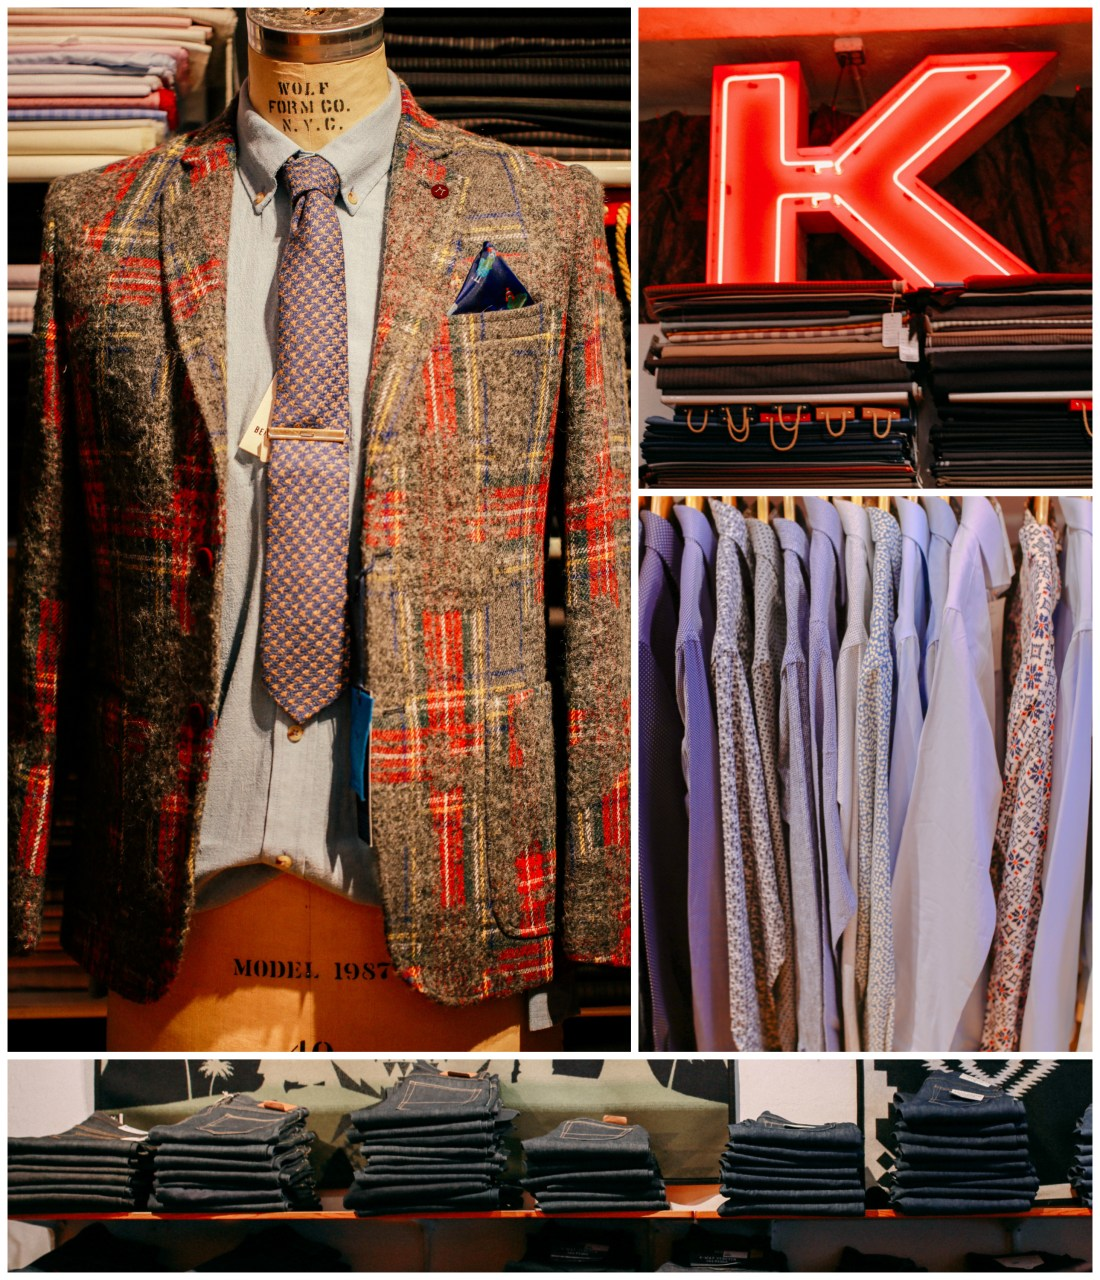 Clothing for men available at KUHLMAN in Seattle.